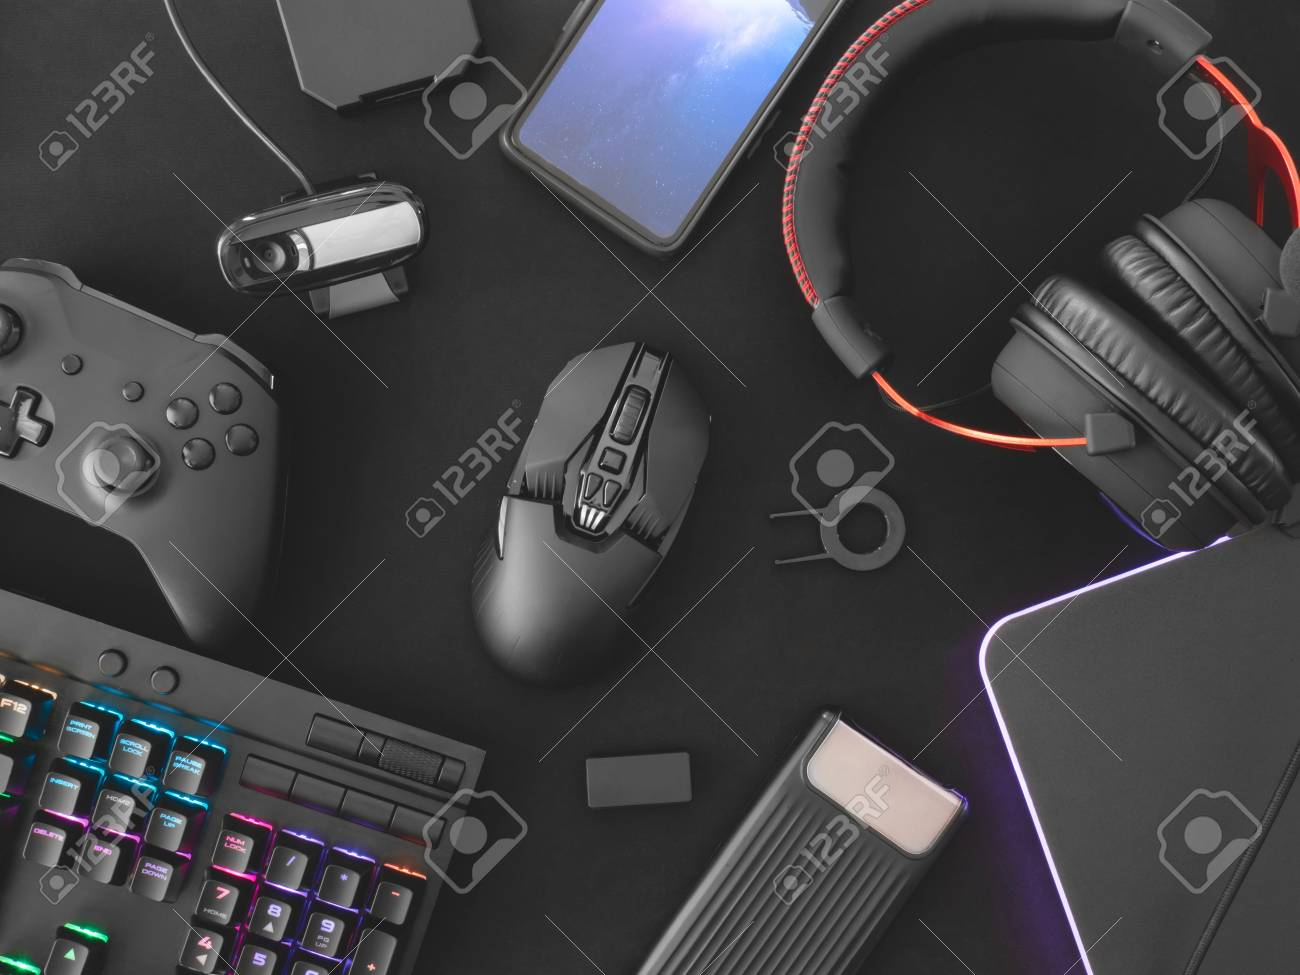 streaming games concept, top view a gaming gear, mouse, Webcams,